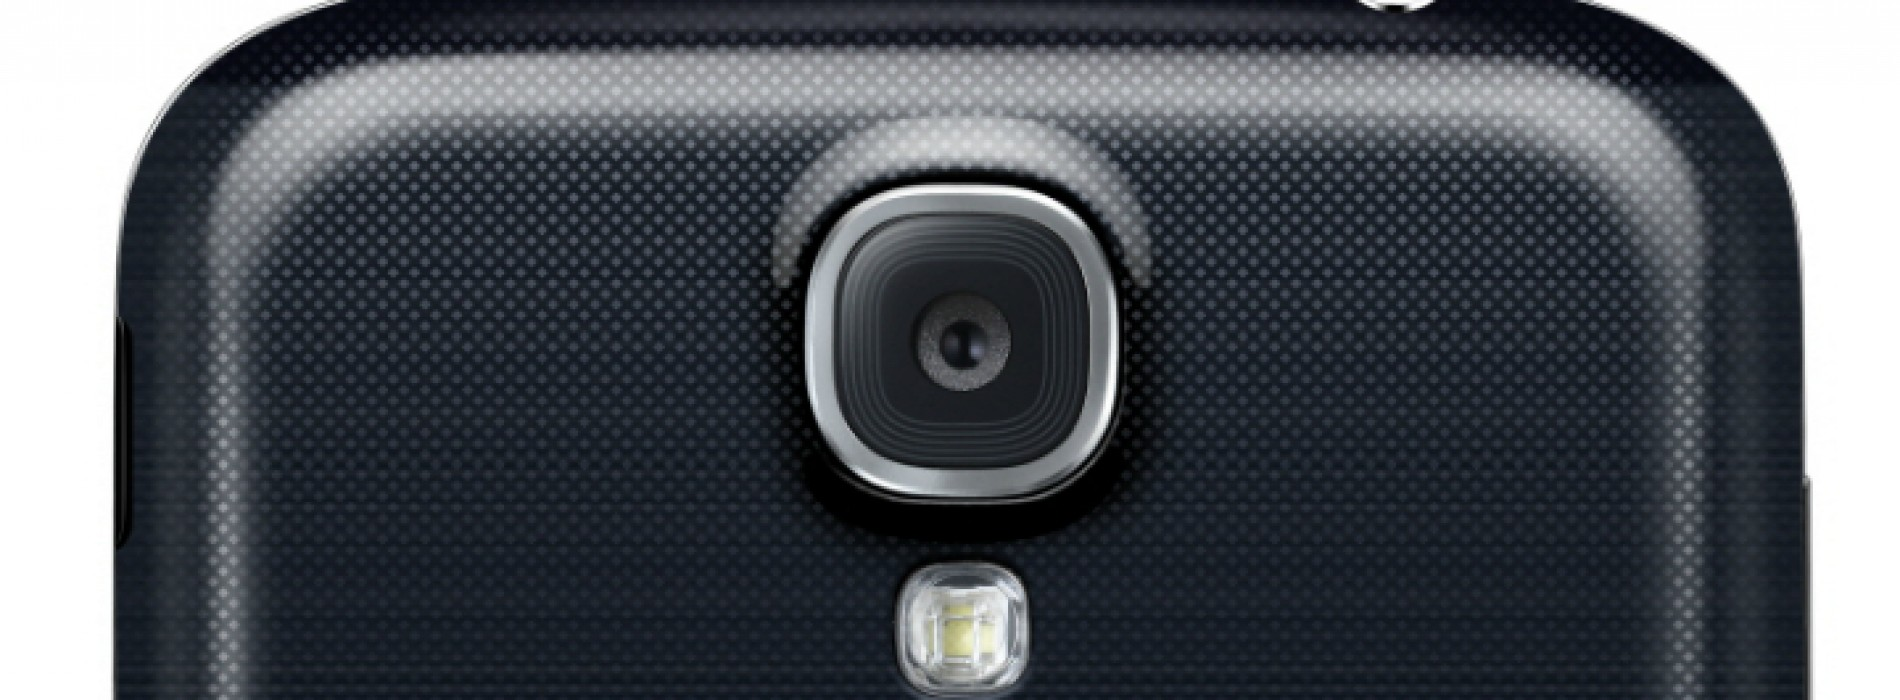 Samsung Galaxy S5 to feature 16-megapixel camera with optical image stabilization — report